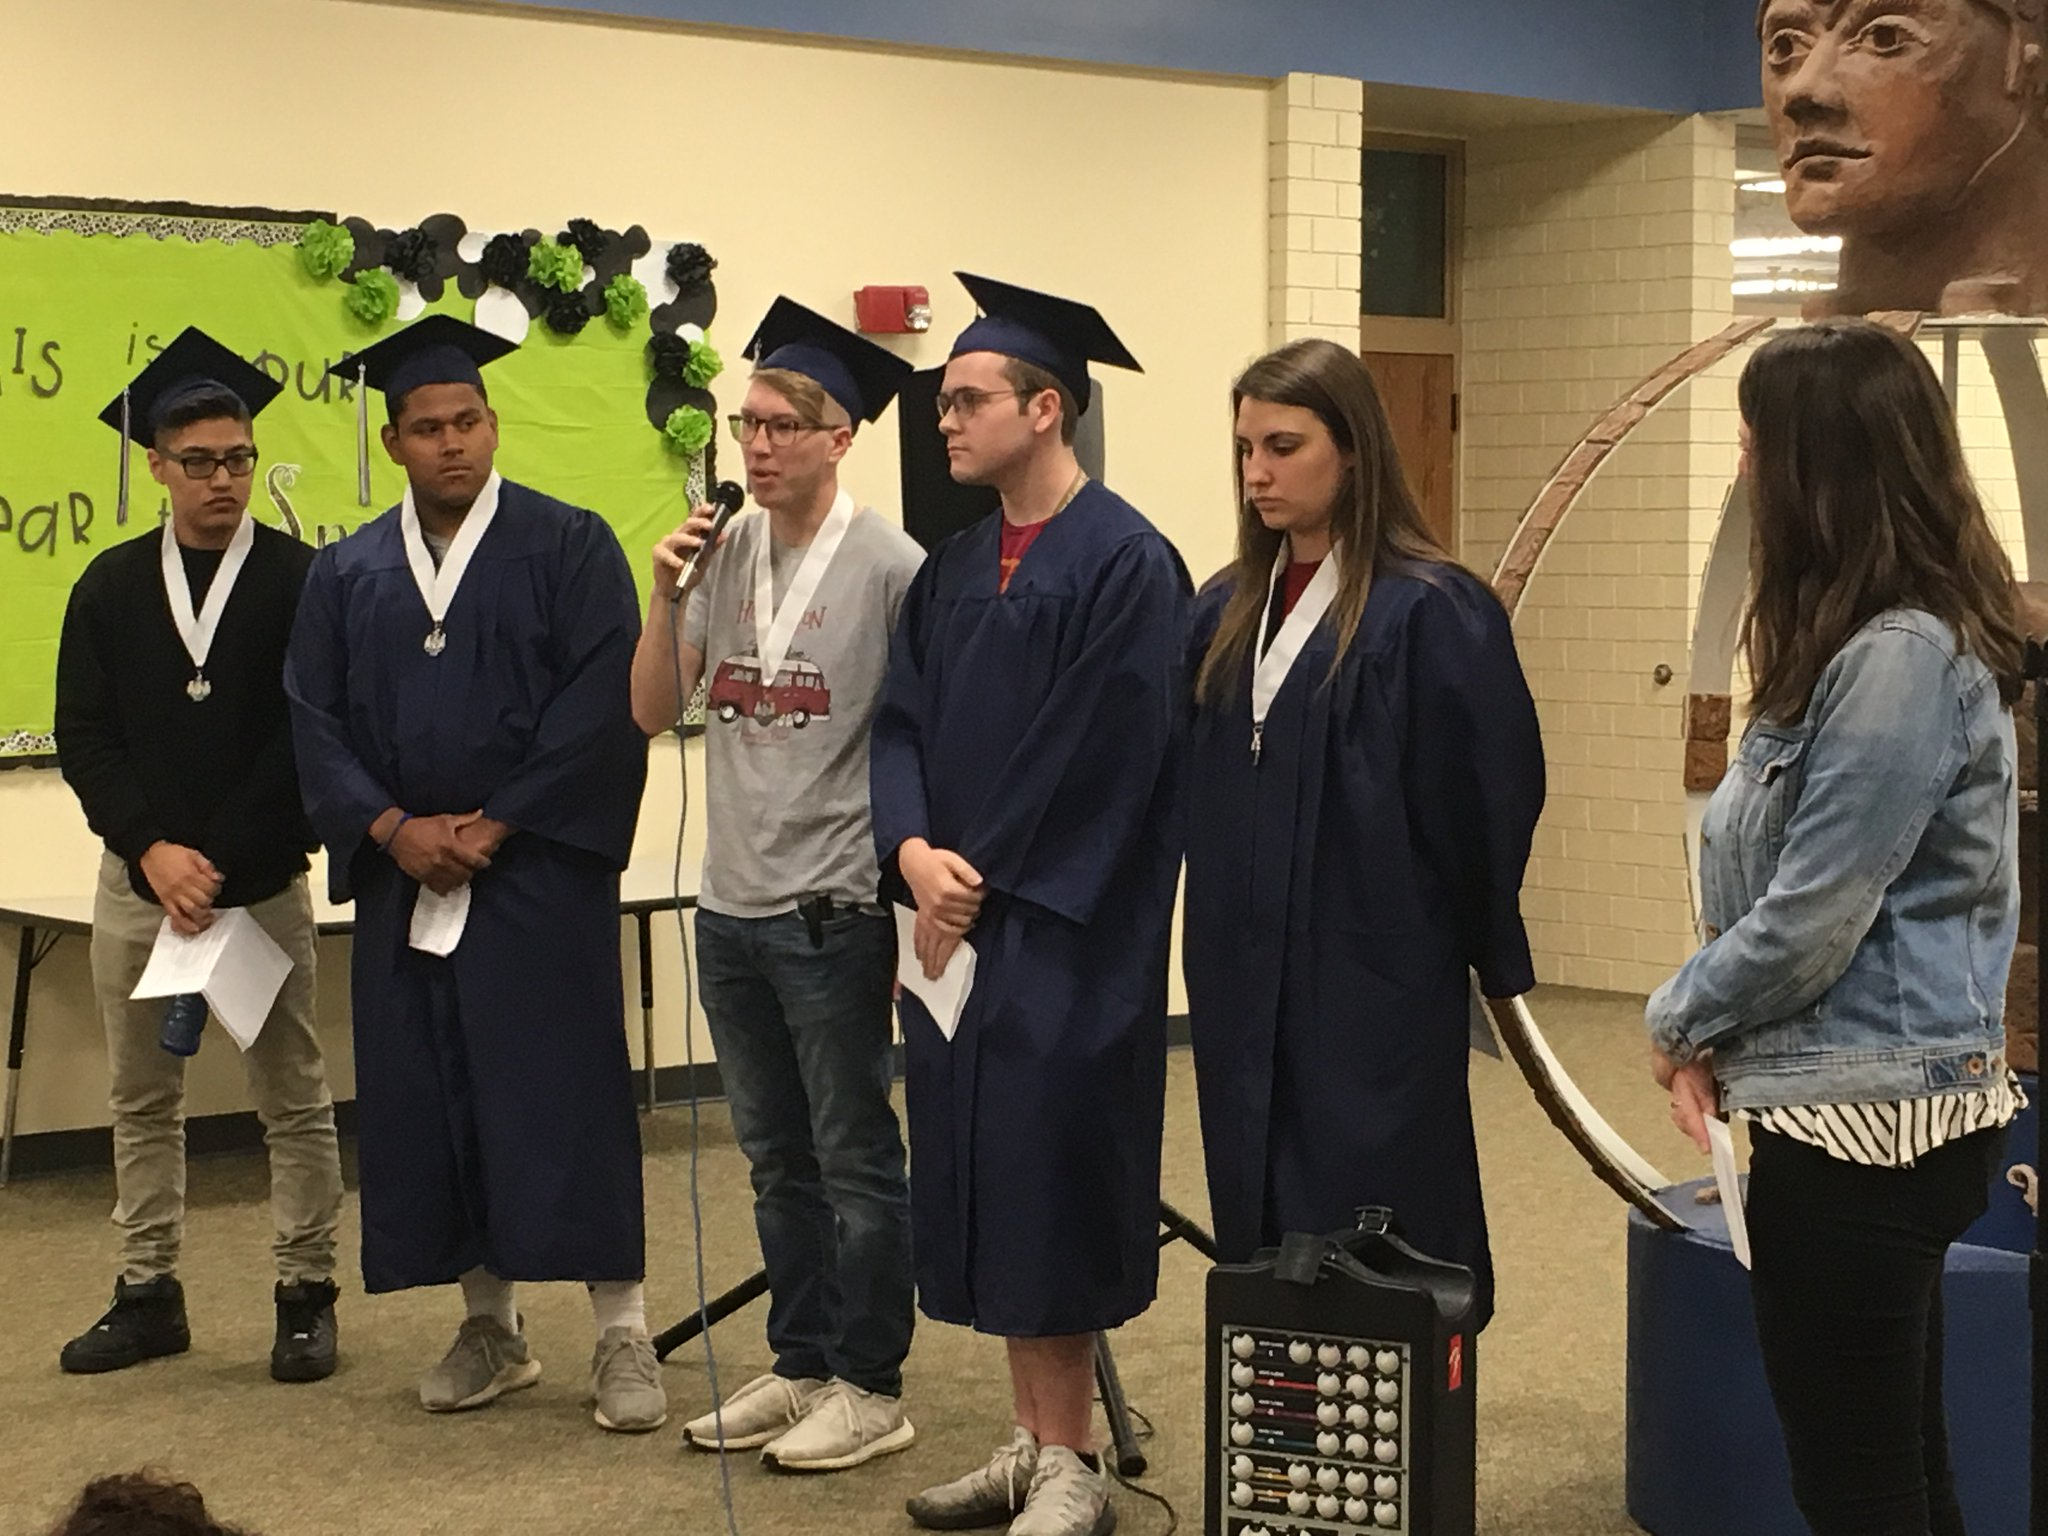 Seniors have been visiting Titan Hill to share their stories about high school & graduation success! On Friday they will be walking through the hallways for the Parade of Excellence - what great role models! https://t.co/DpzcQAloot